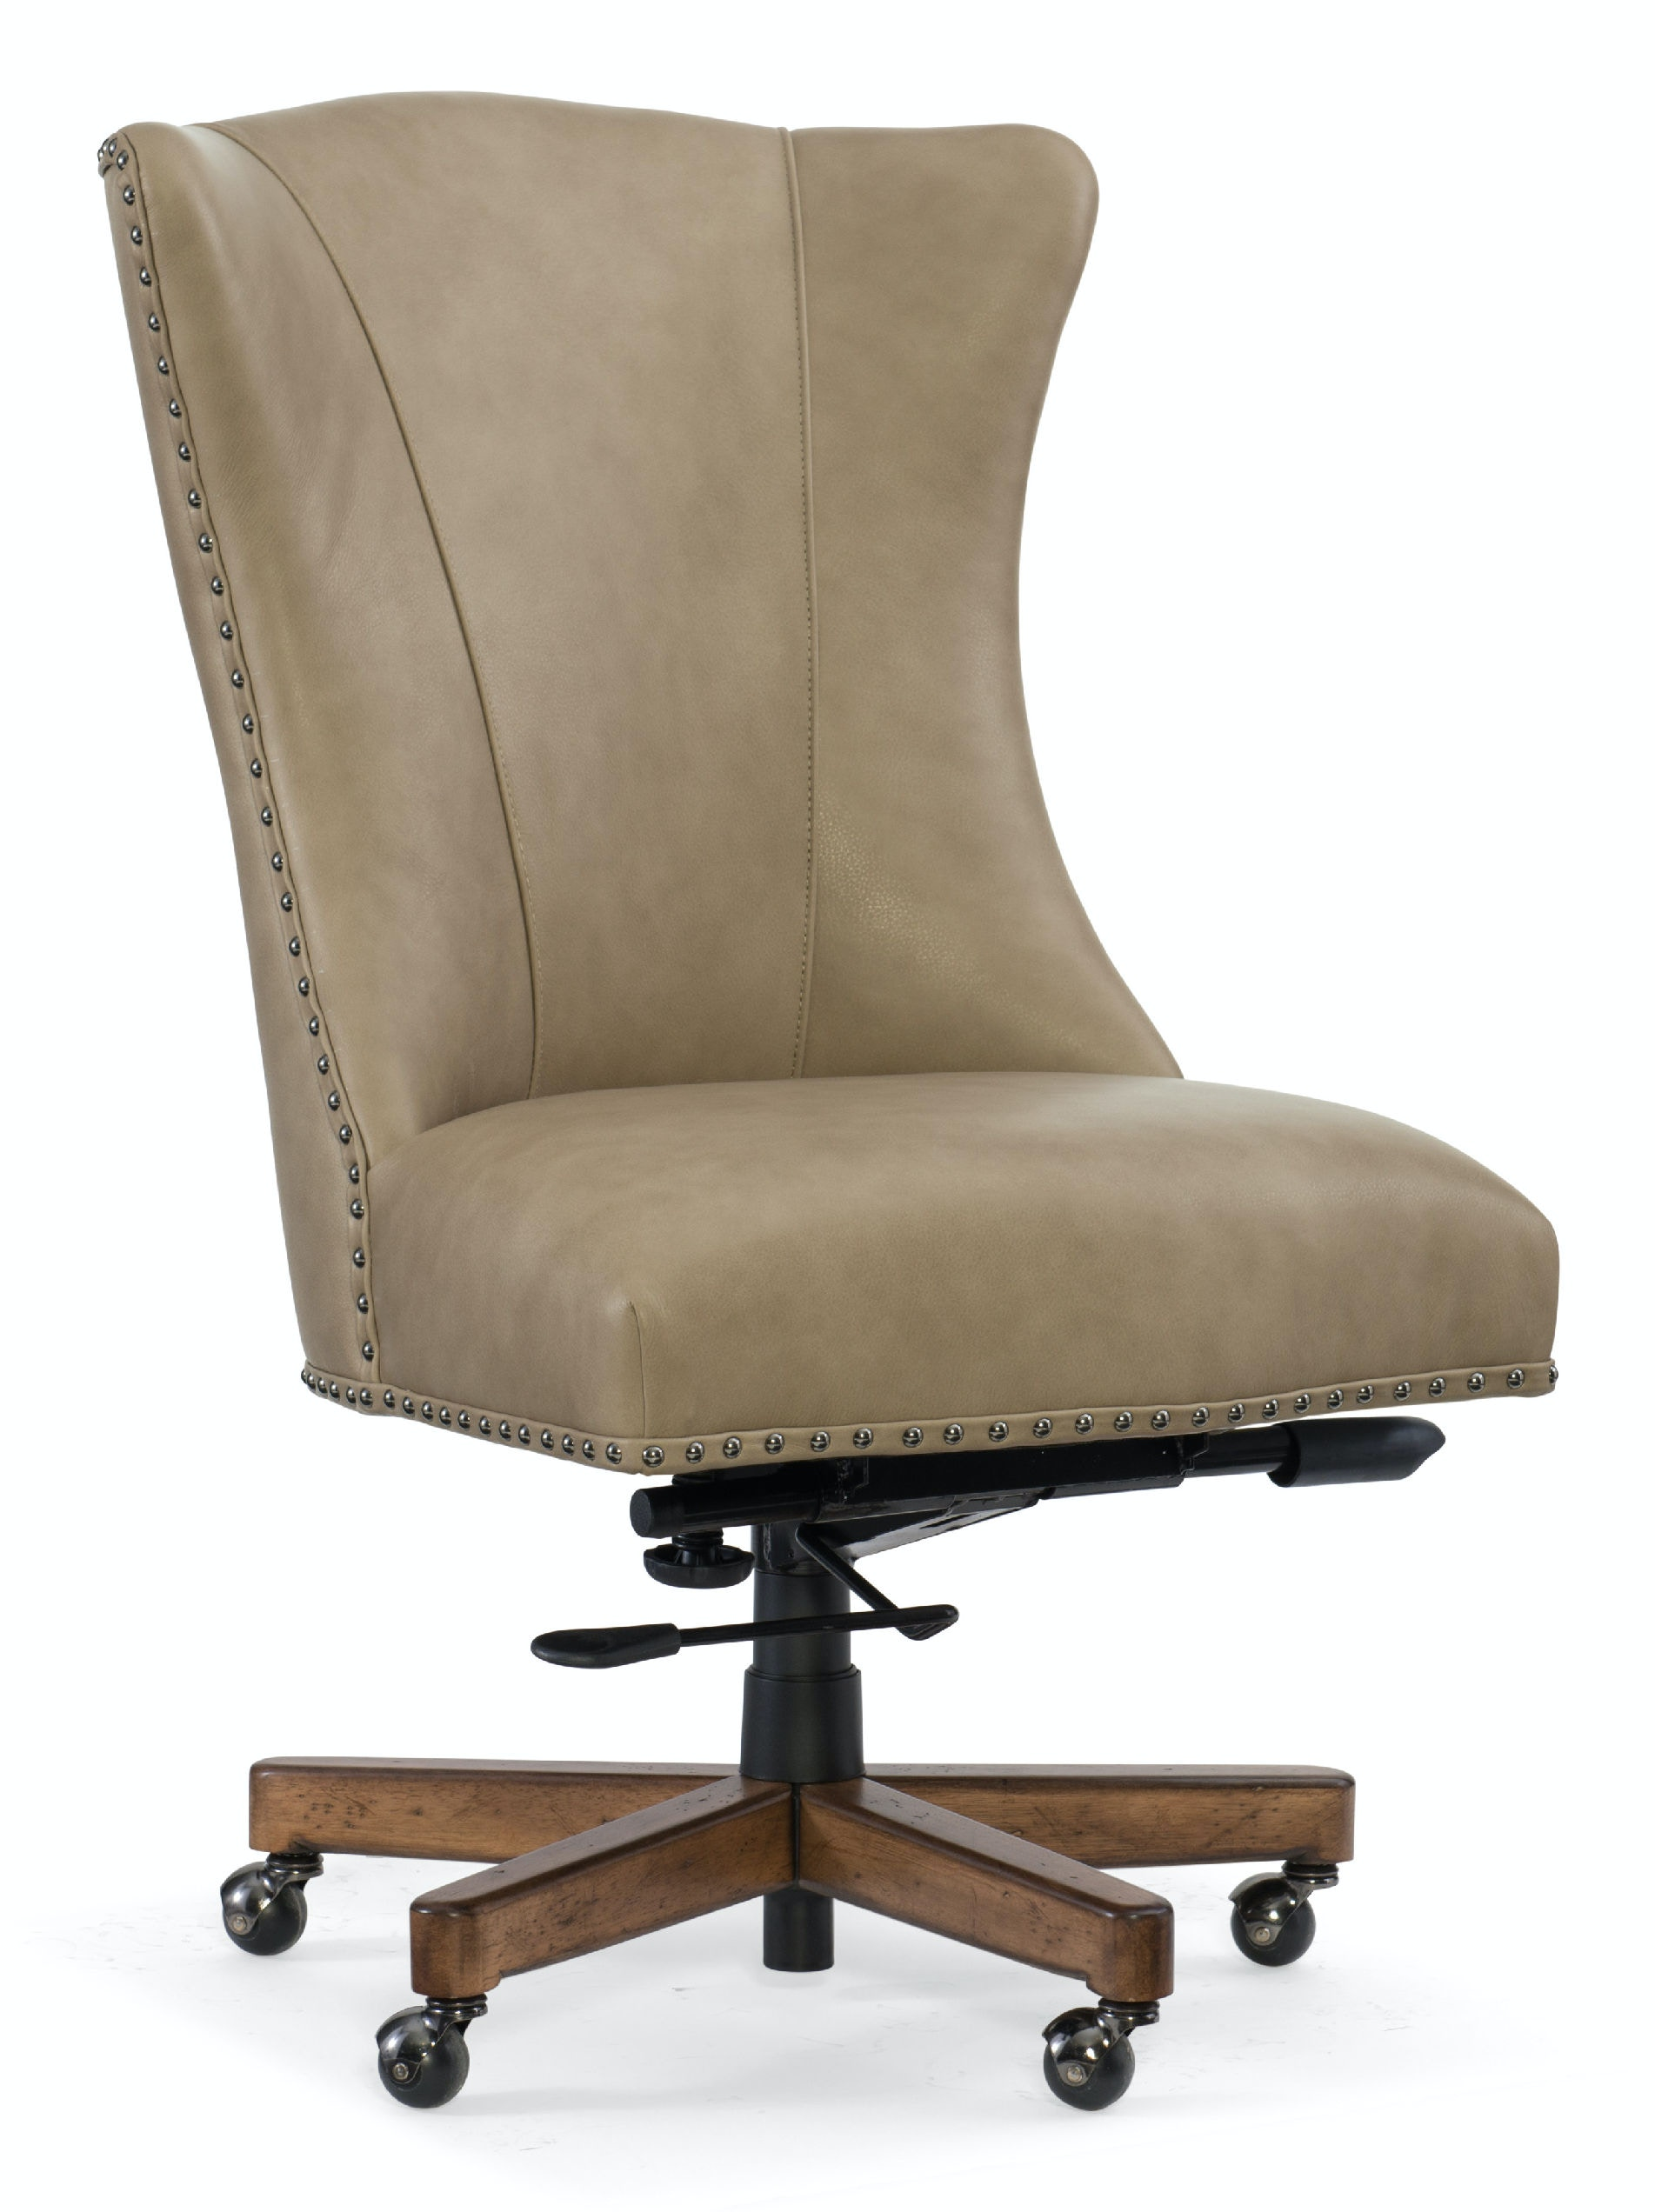 Hooker furniture lynn home office chair ec483 083 for C furniture new lynn